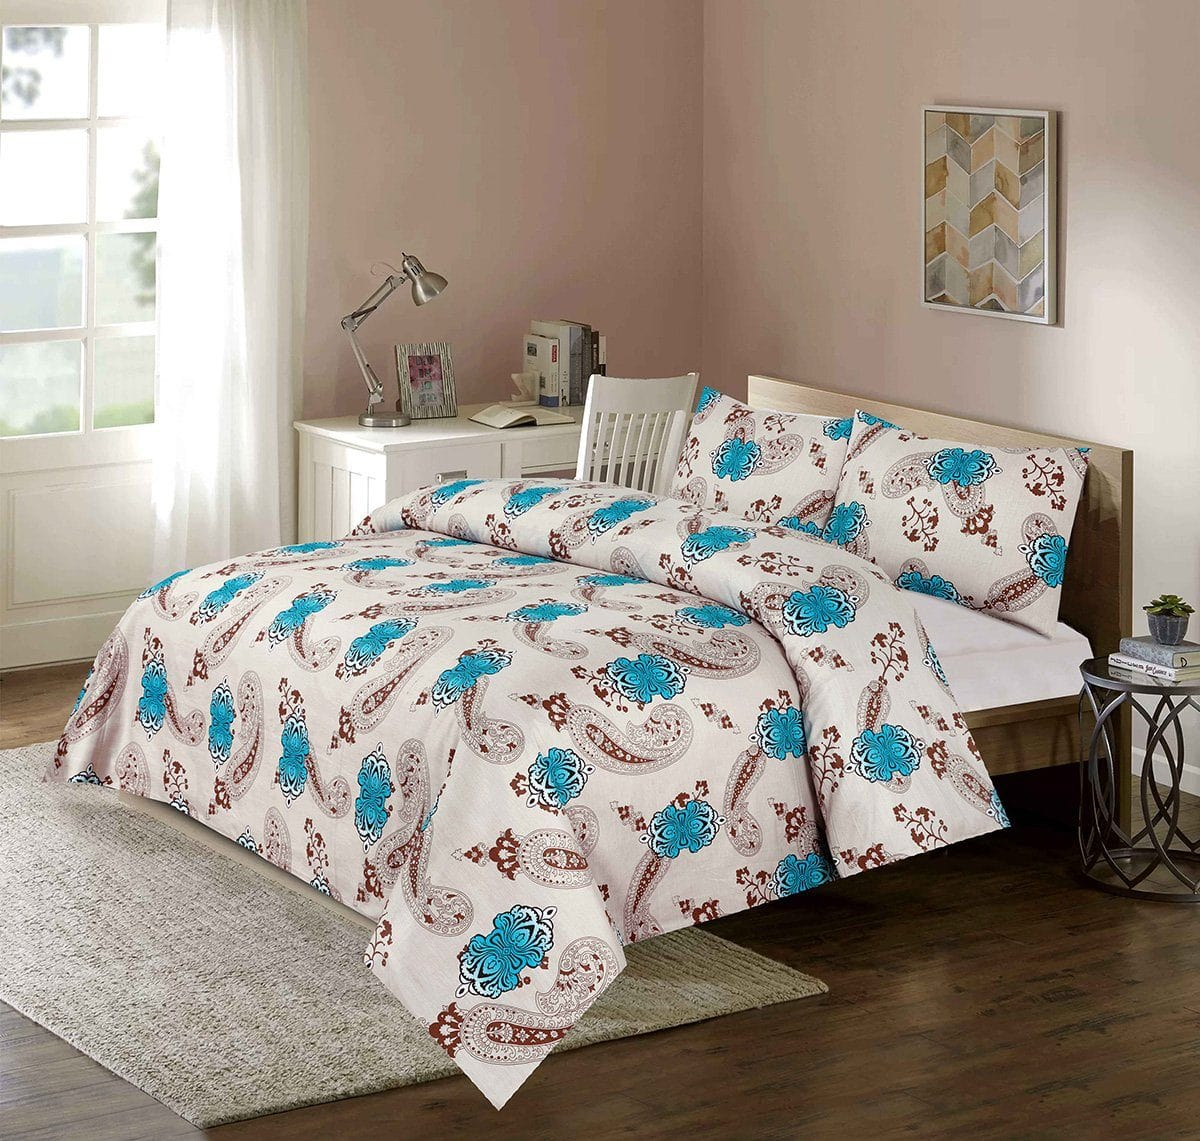 Grace 64-Reactive cotton Satin Quality king size Bedsheet with 2 pillow covers.